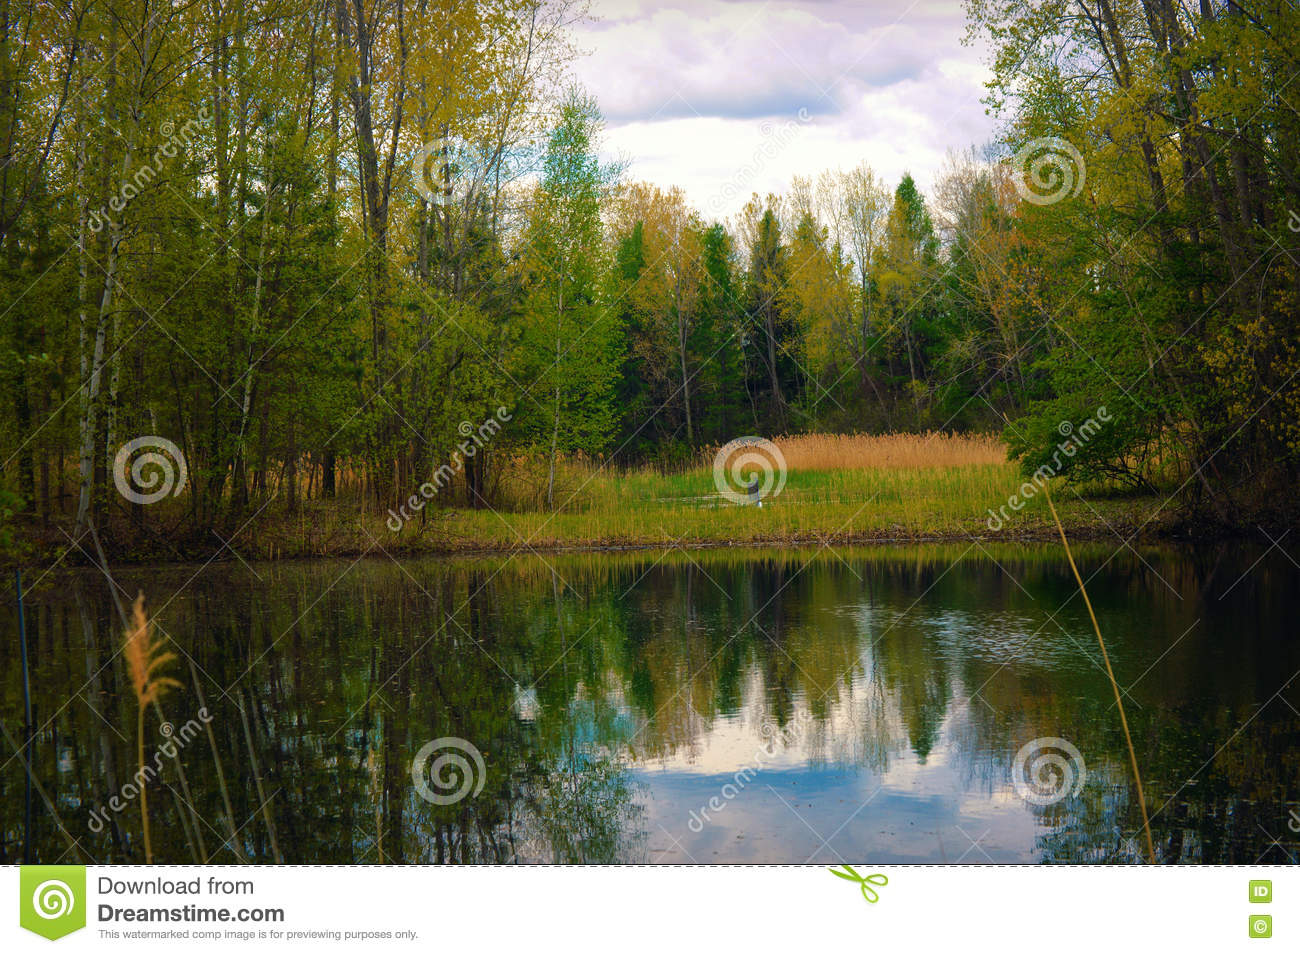 Trees and River